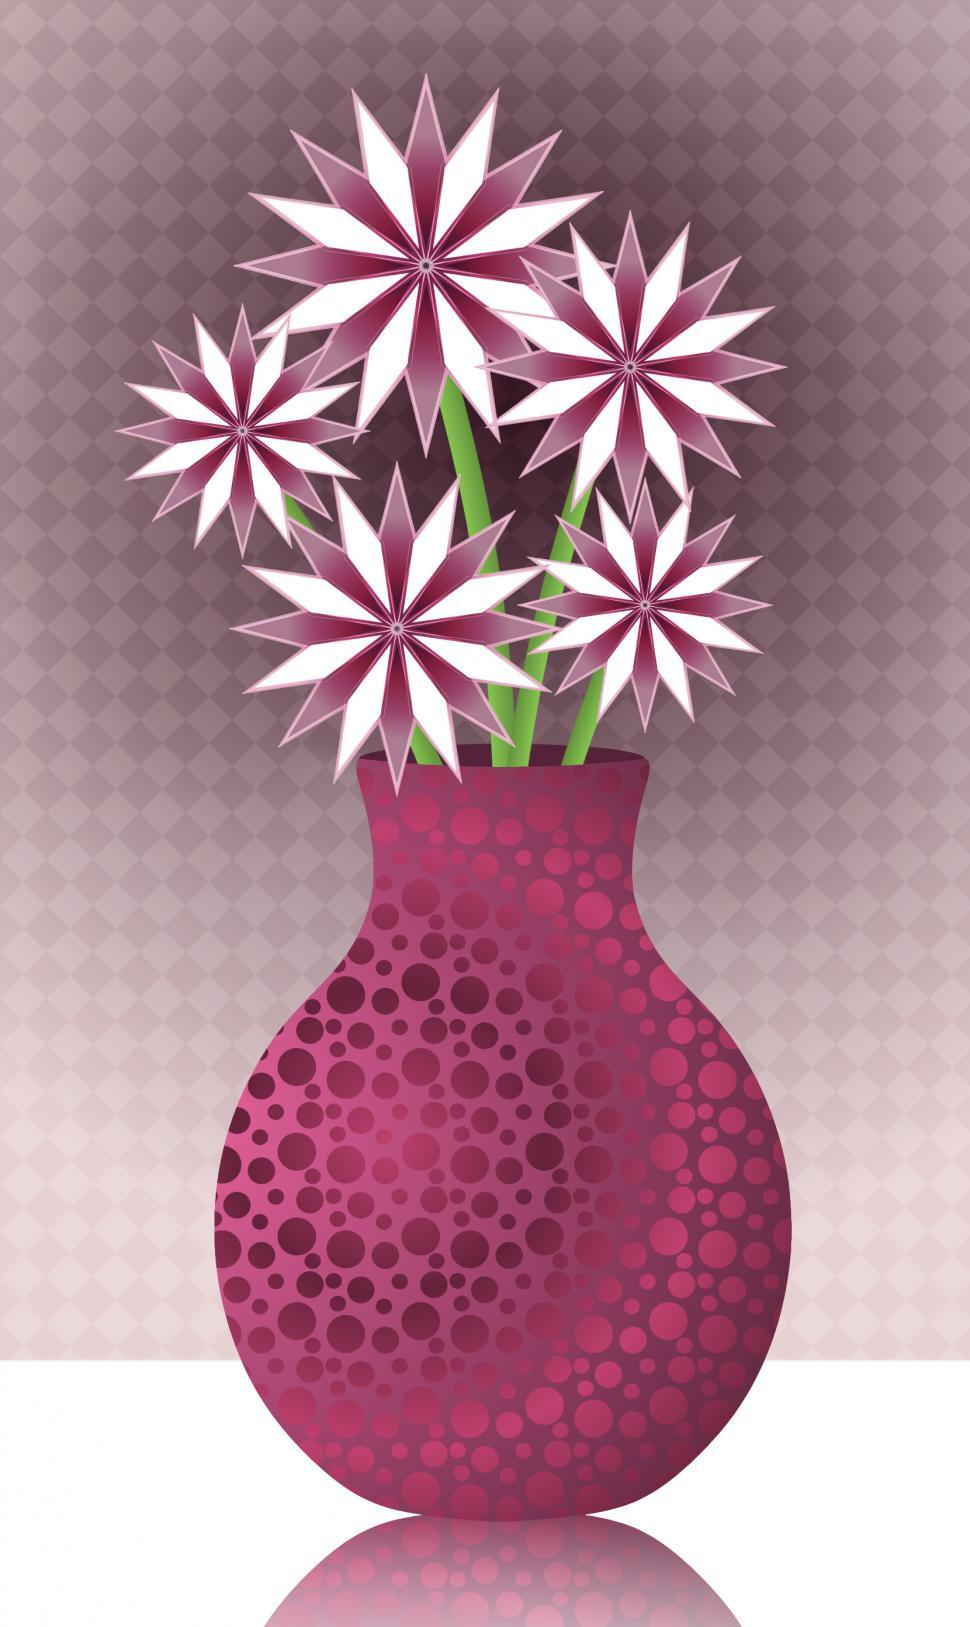 Get free stock photos of pink and white flowers in vase online download free stock hd photo of pink and white flowers in vase online mightylinksfo